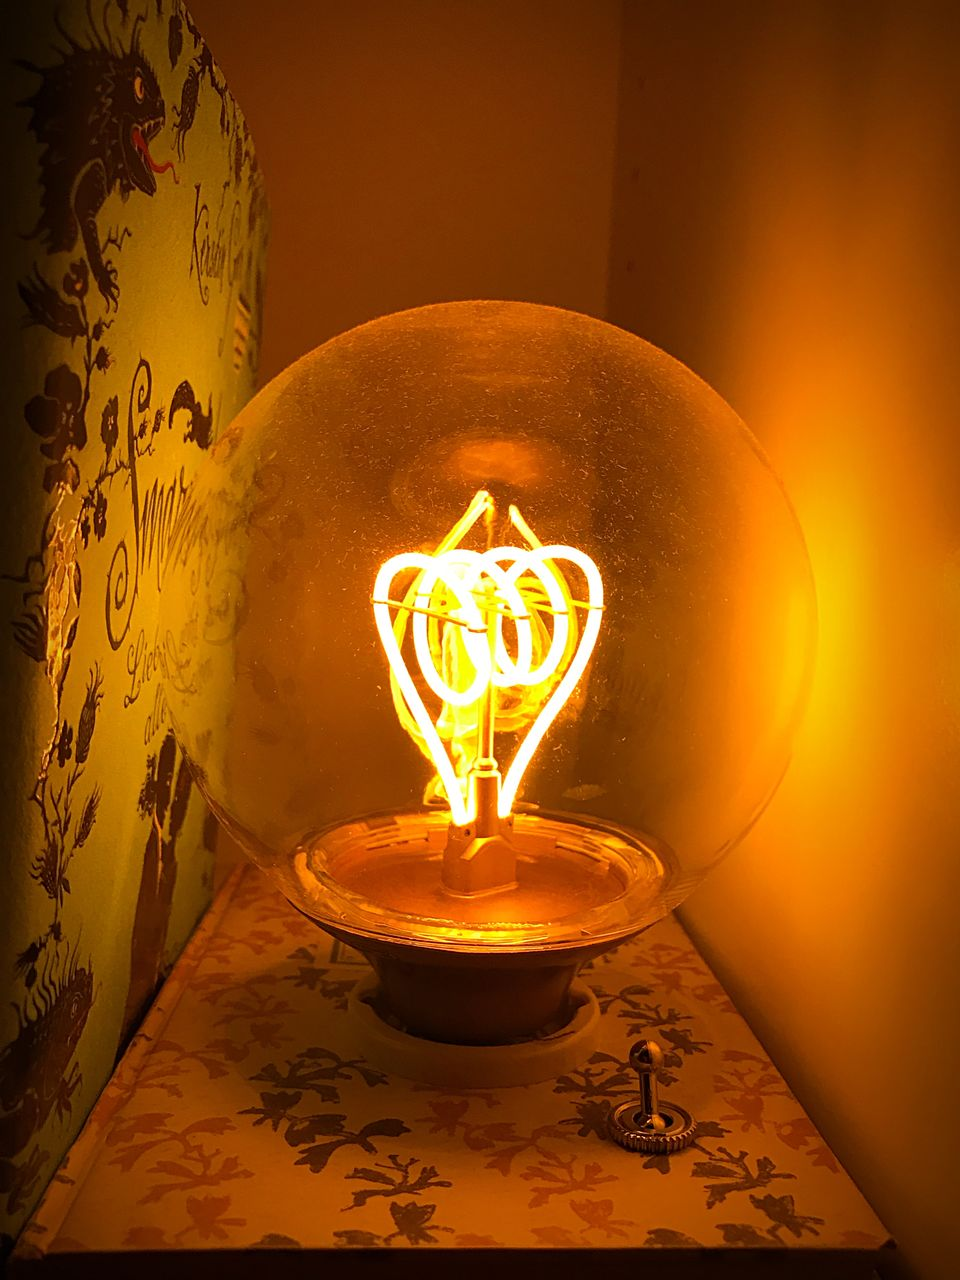 illuminated, lighting equipment, indoors, glowing, burning, fire, close-up, electricity, flame, no people, fire - natural phenomenon, light bulb, light, glass - material, candle, heat - temperature, light - natural phenomenon, filament, yellow, orange color, electric lamp, floral pattern